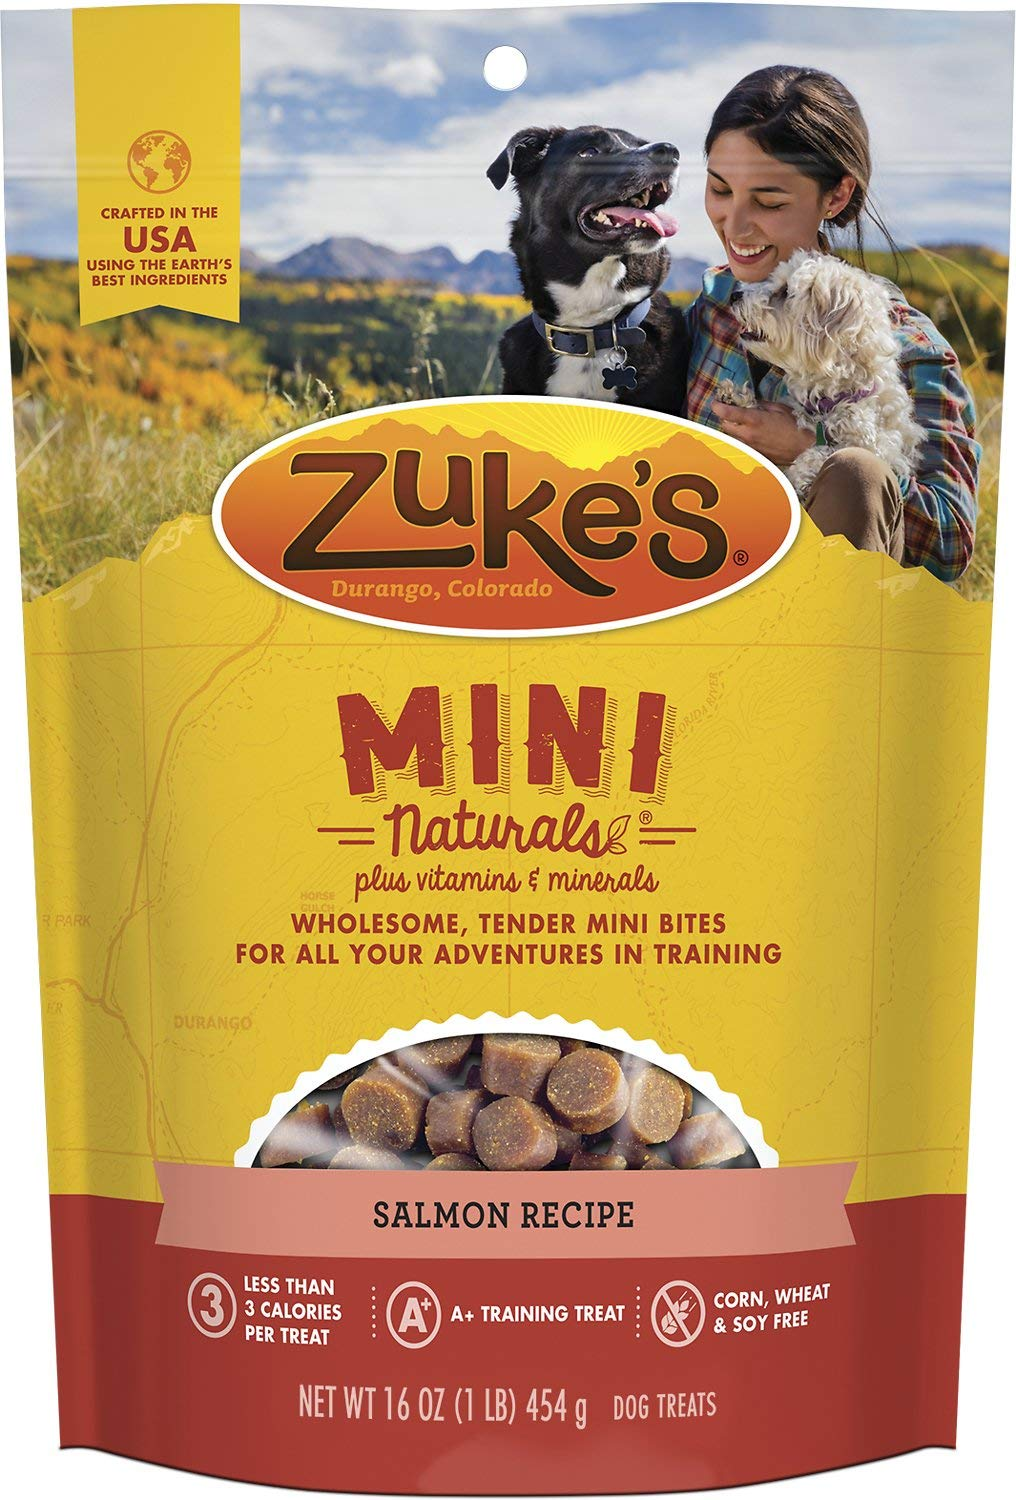 Zukes Mini Naturals Moist Miniature Treats Salmon 12lb (12x1lb) by Zuke's